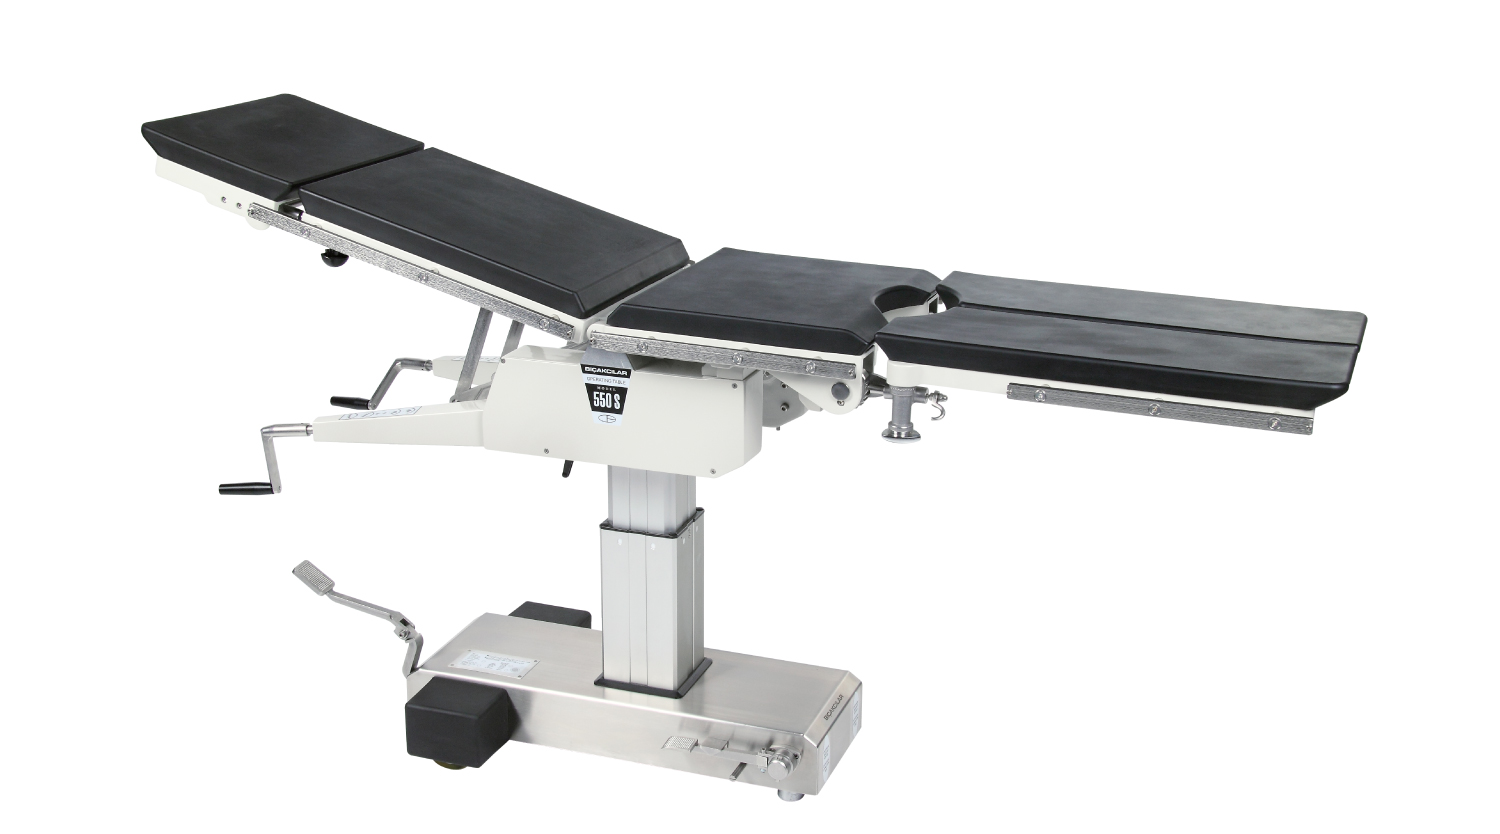 SURGILINE 550S - 550SE SURGICAL TABLES